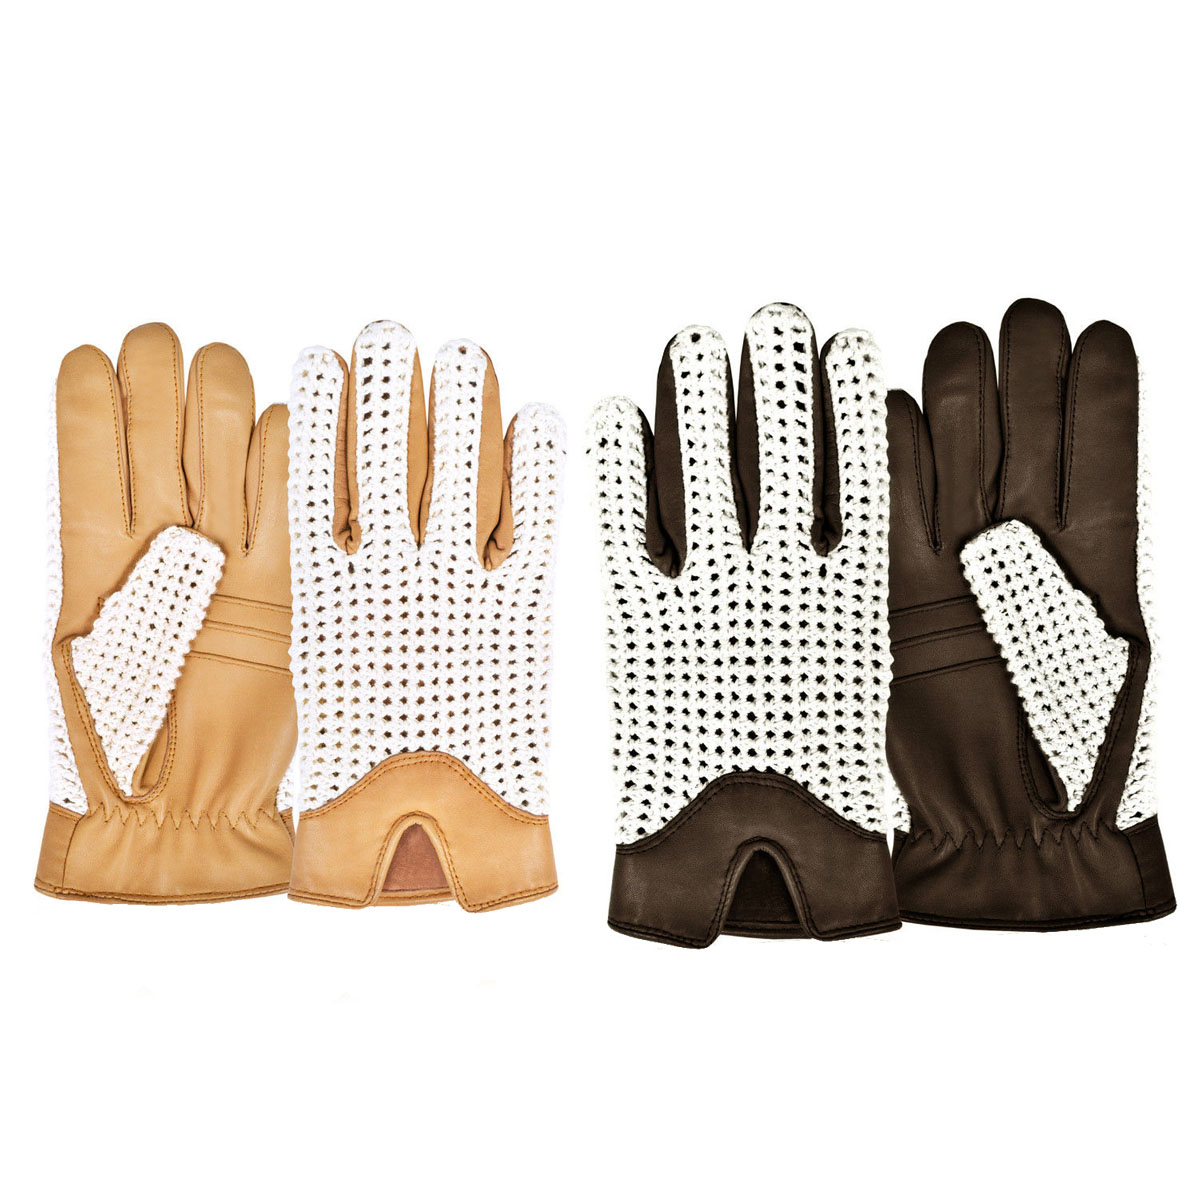 MEN'S LEATHER CHAUFFEUR DRIVING GLOVES MOTORBIKE BIKE BUS CLASSIC RETRO STYLE